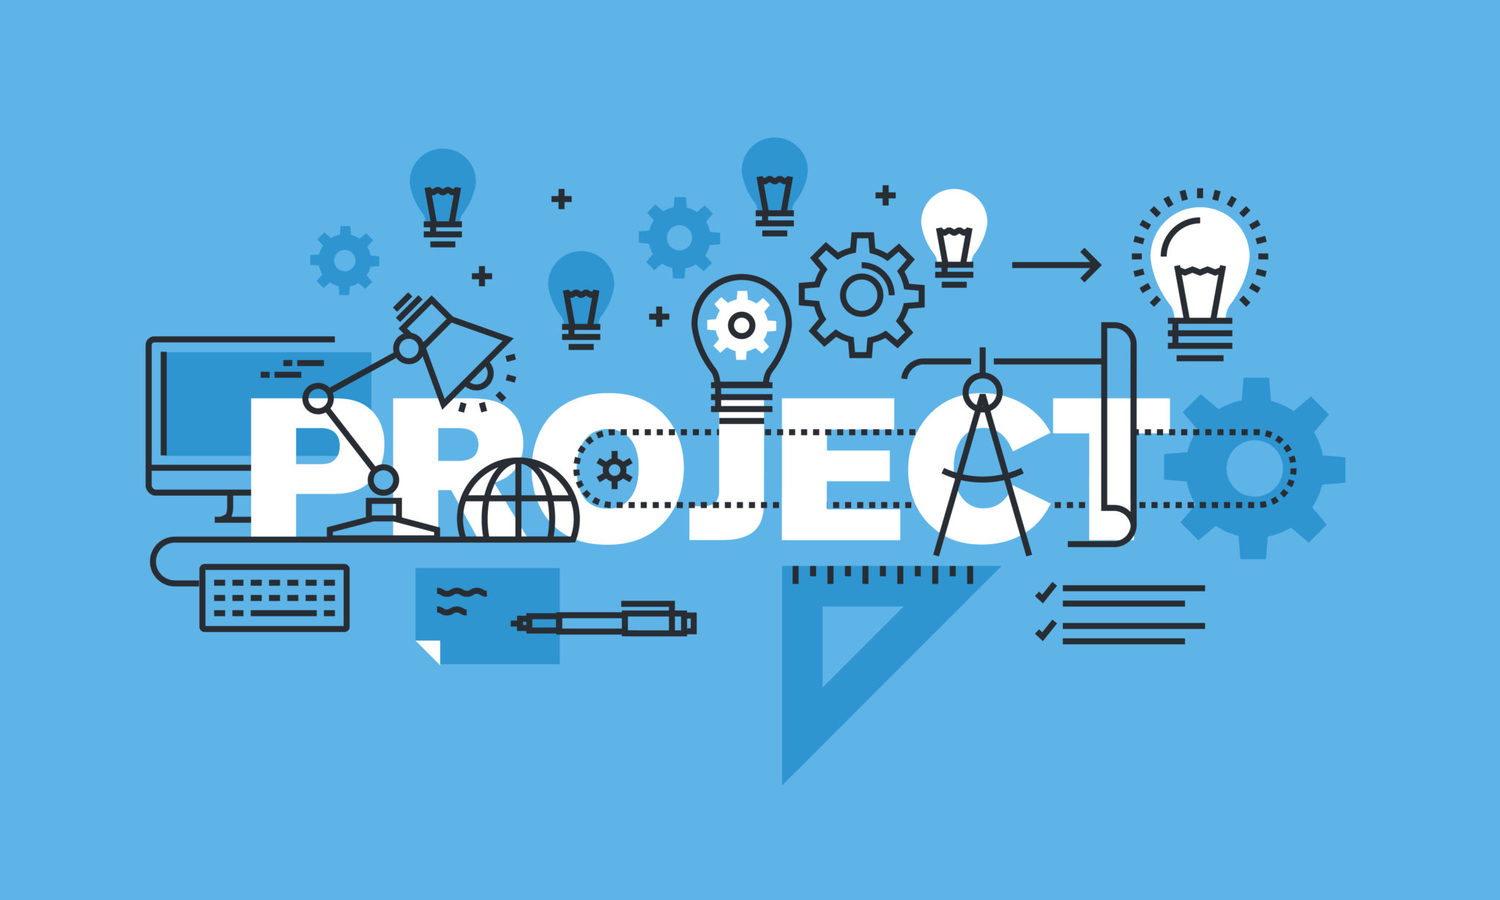 Project Management - AFFORDABLE AND CLEAN ENERGY